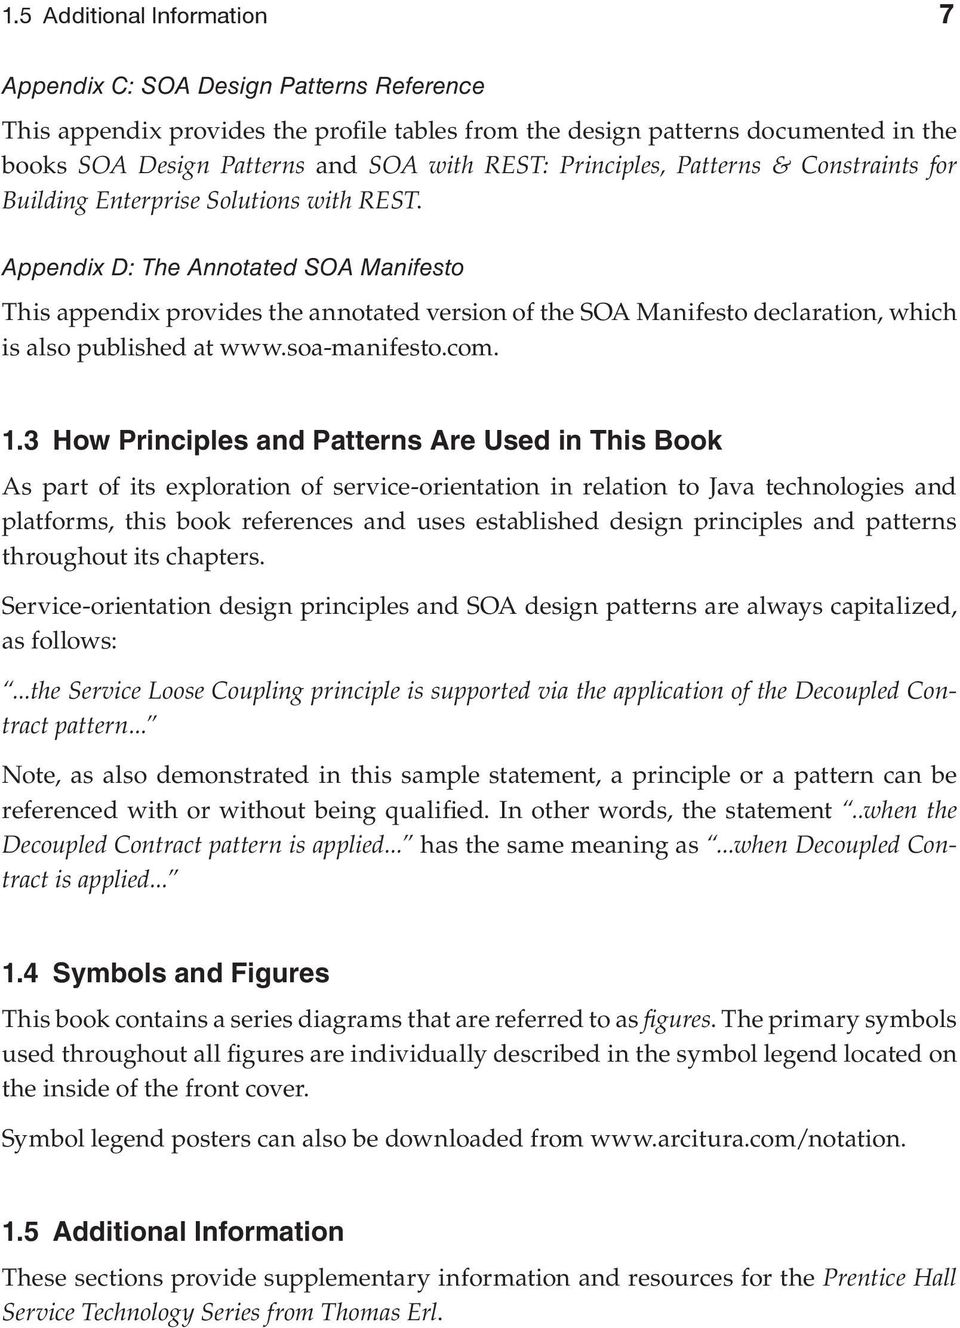 Appendix D: The Annotated SOA Manifesto This appendix provides the annotated version of the SOA Manifesto declaration, which is also published at www.soa-manifesto.com. 1.